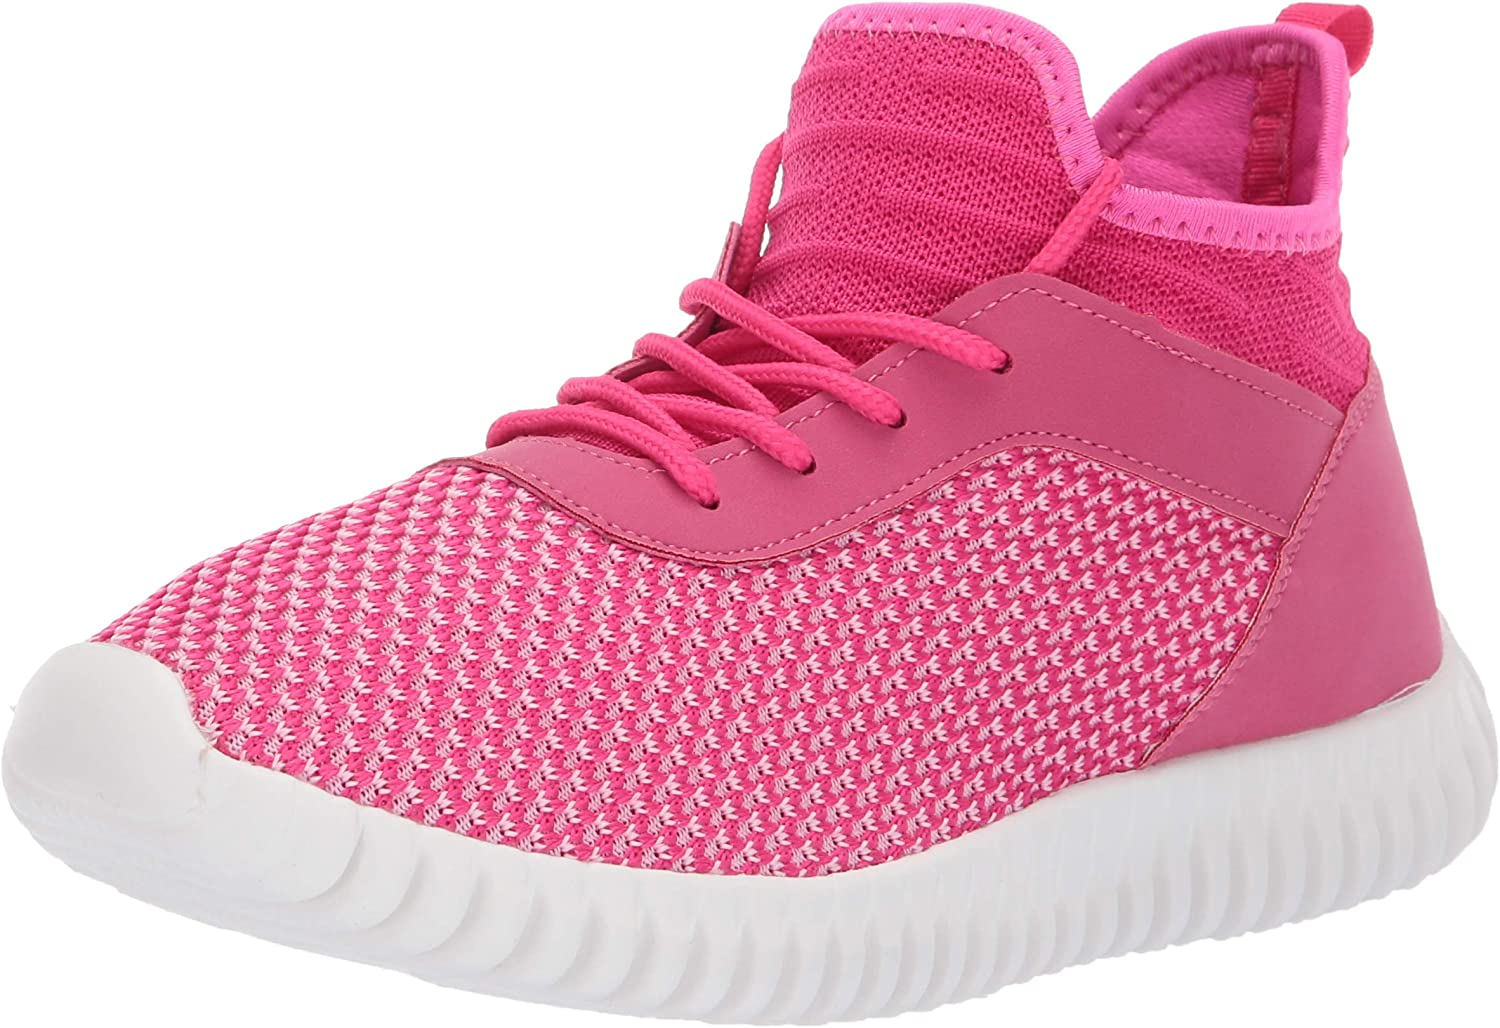 Dirty Laundry Women's Harlen Sneaker